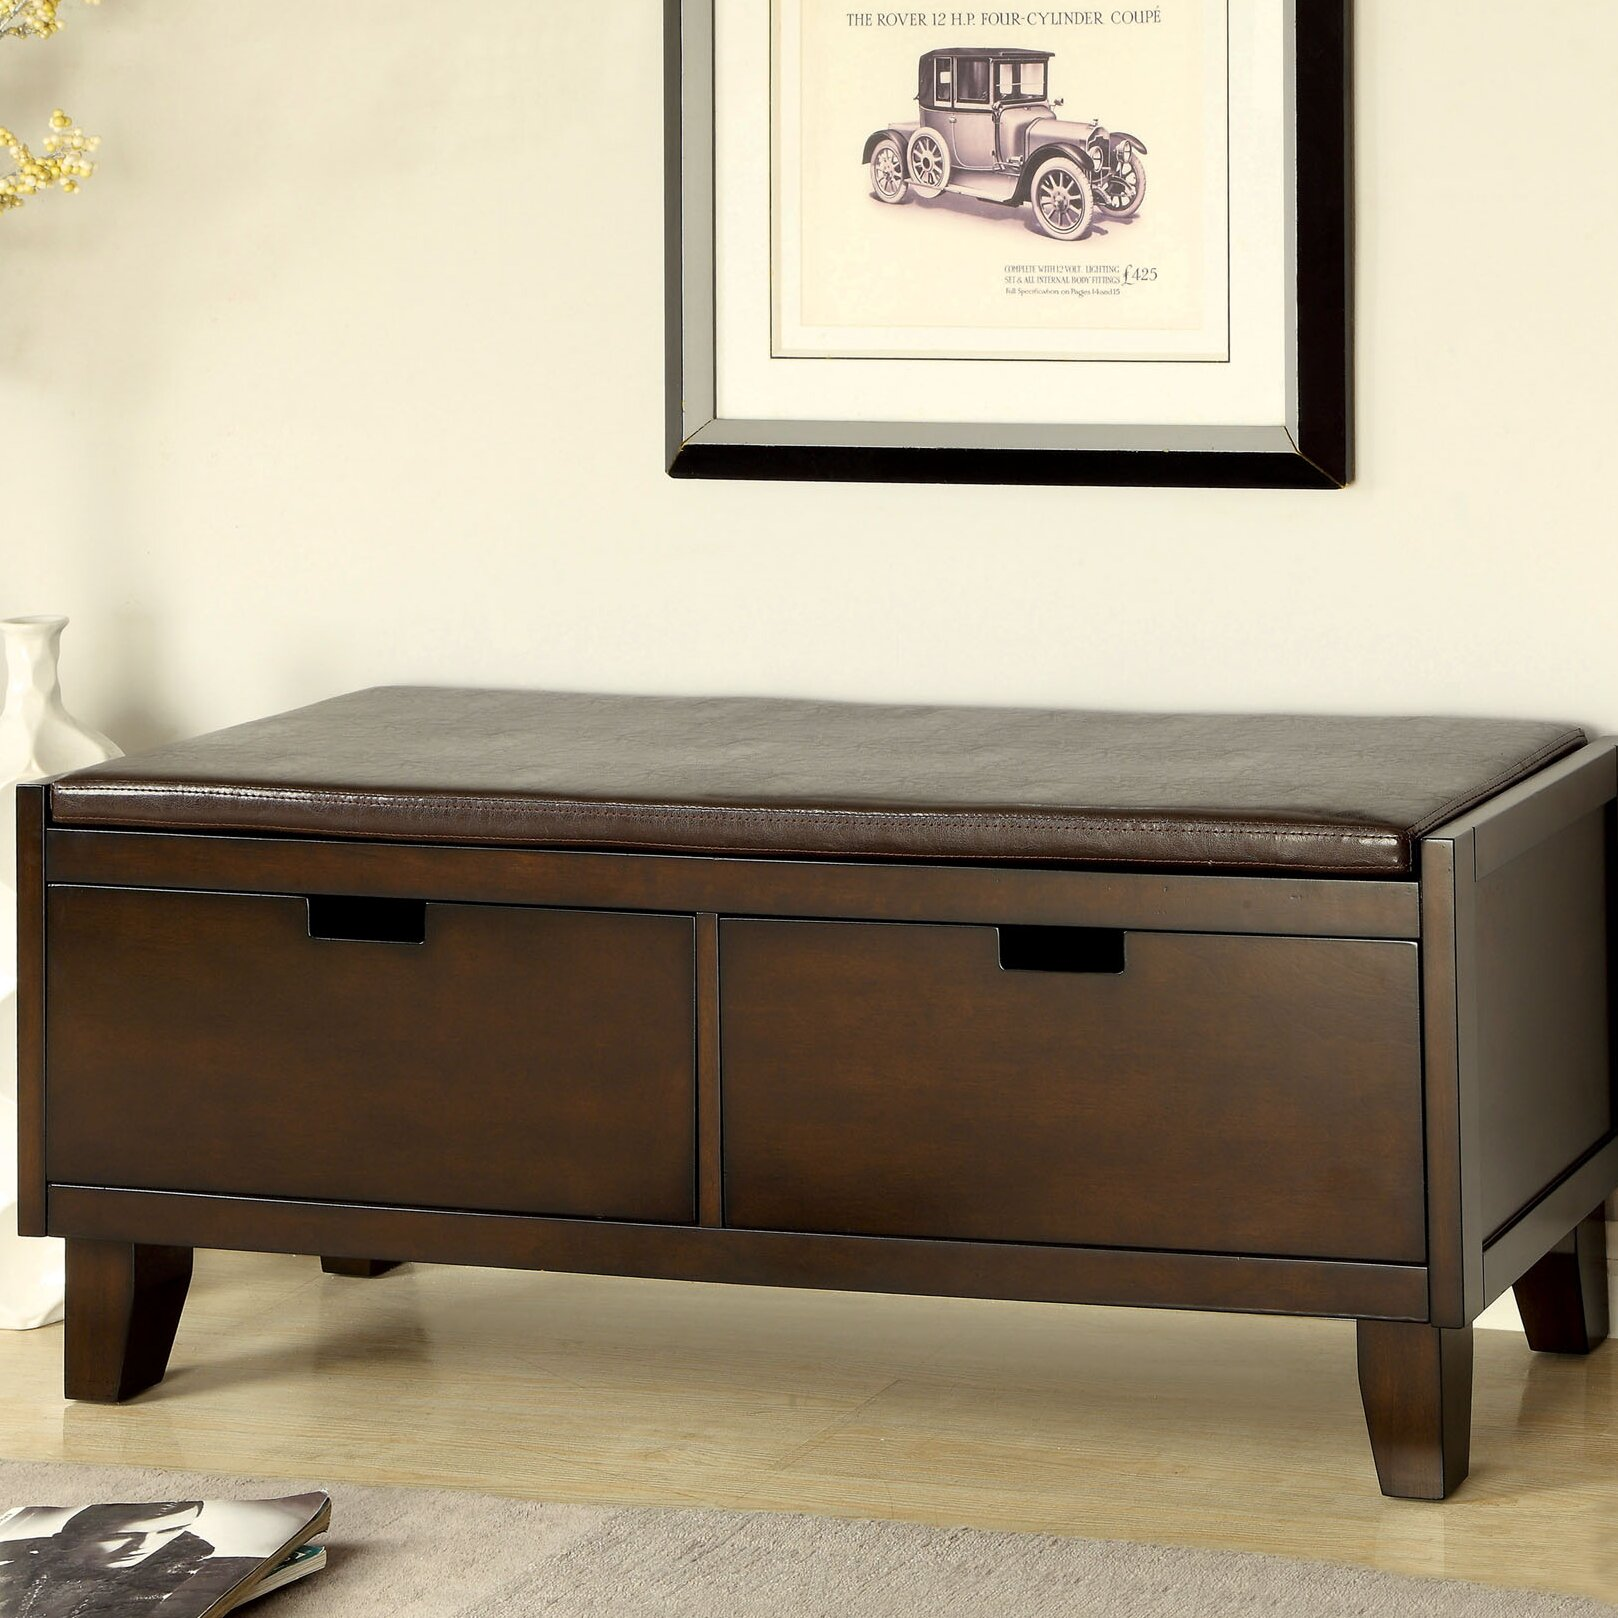 Hokku designs executive leatherette storage entryway bench for Entryway mudroom bench